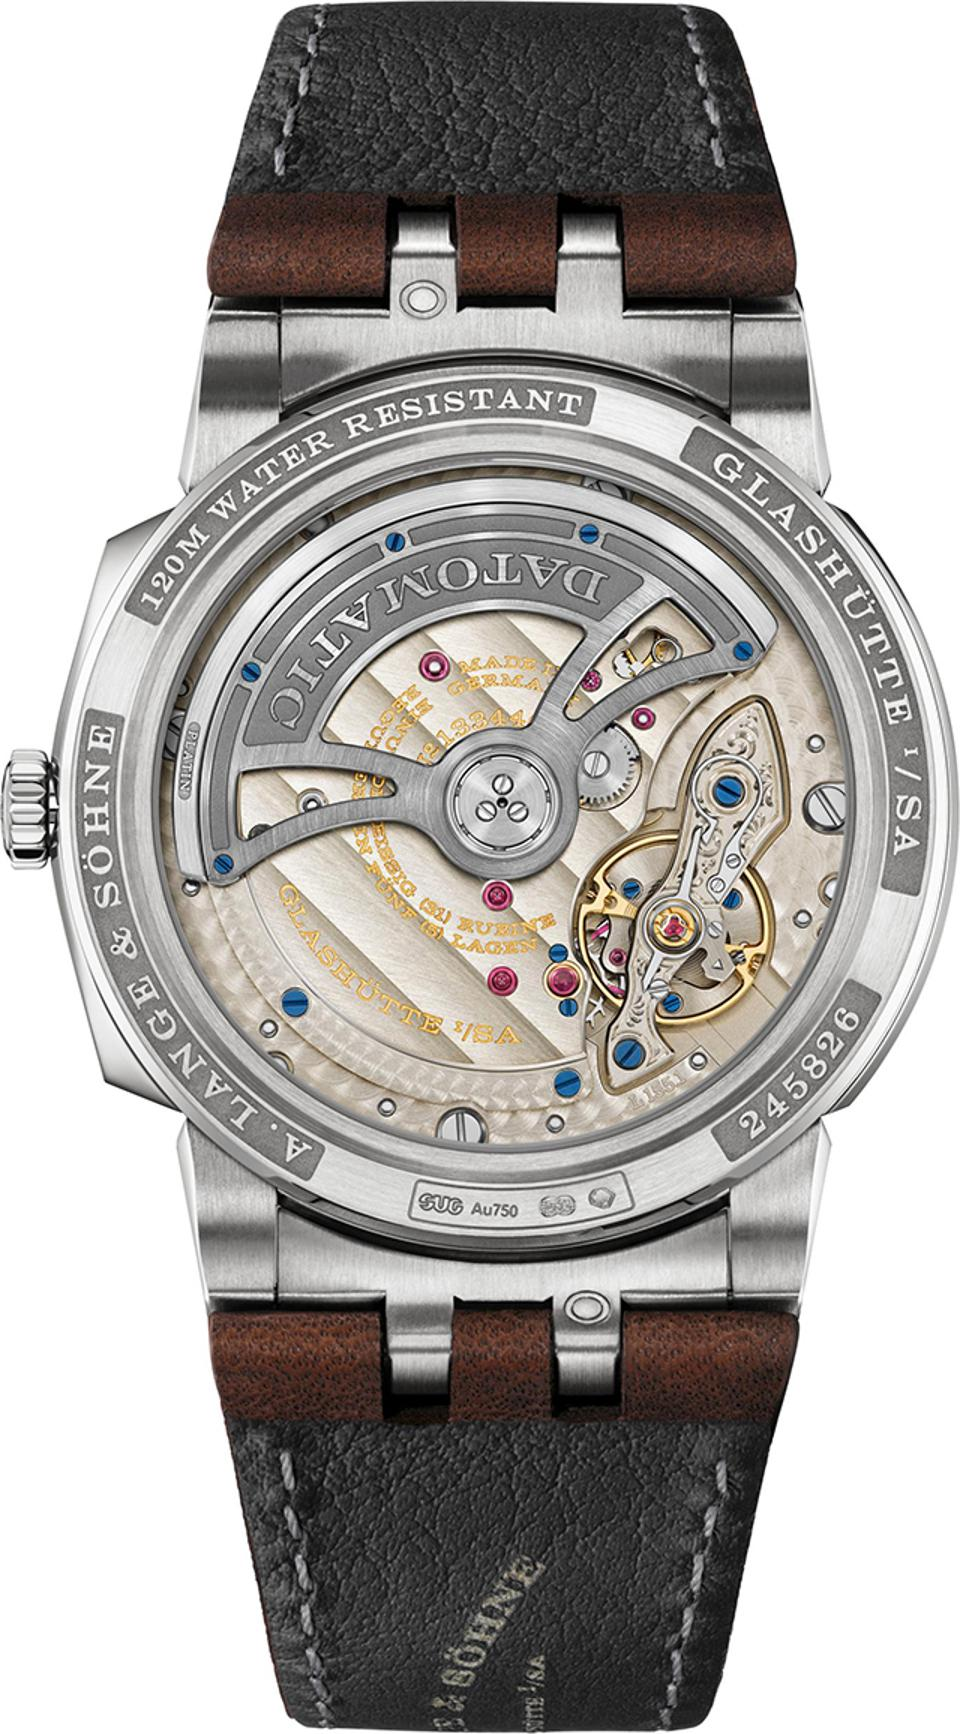 The open caseback of the A. Lange & Söhne Odysseus shows the movement.